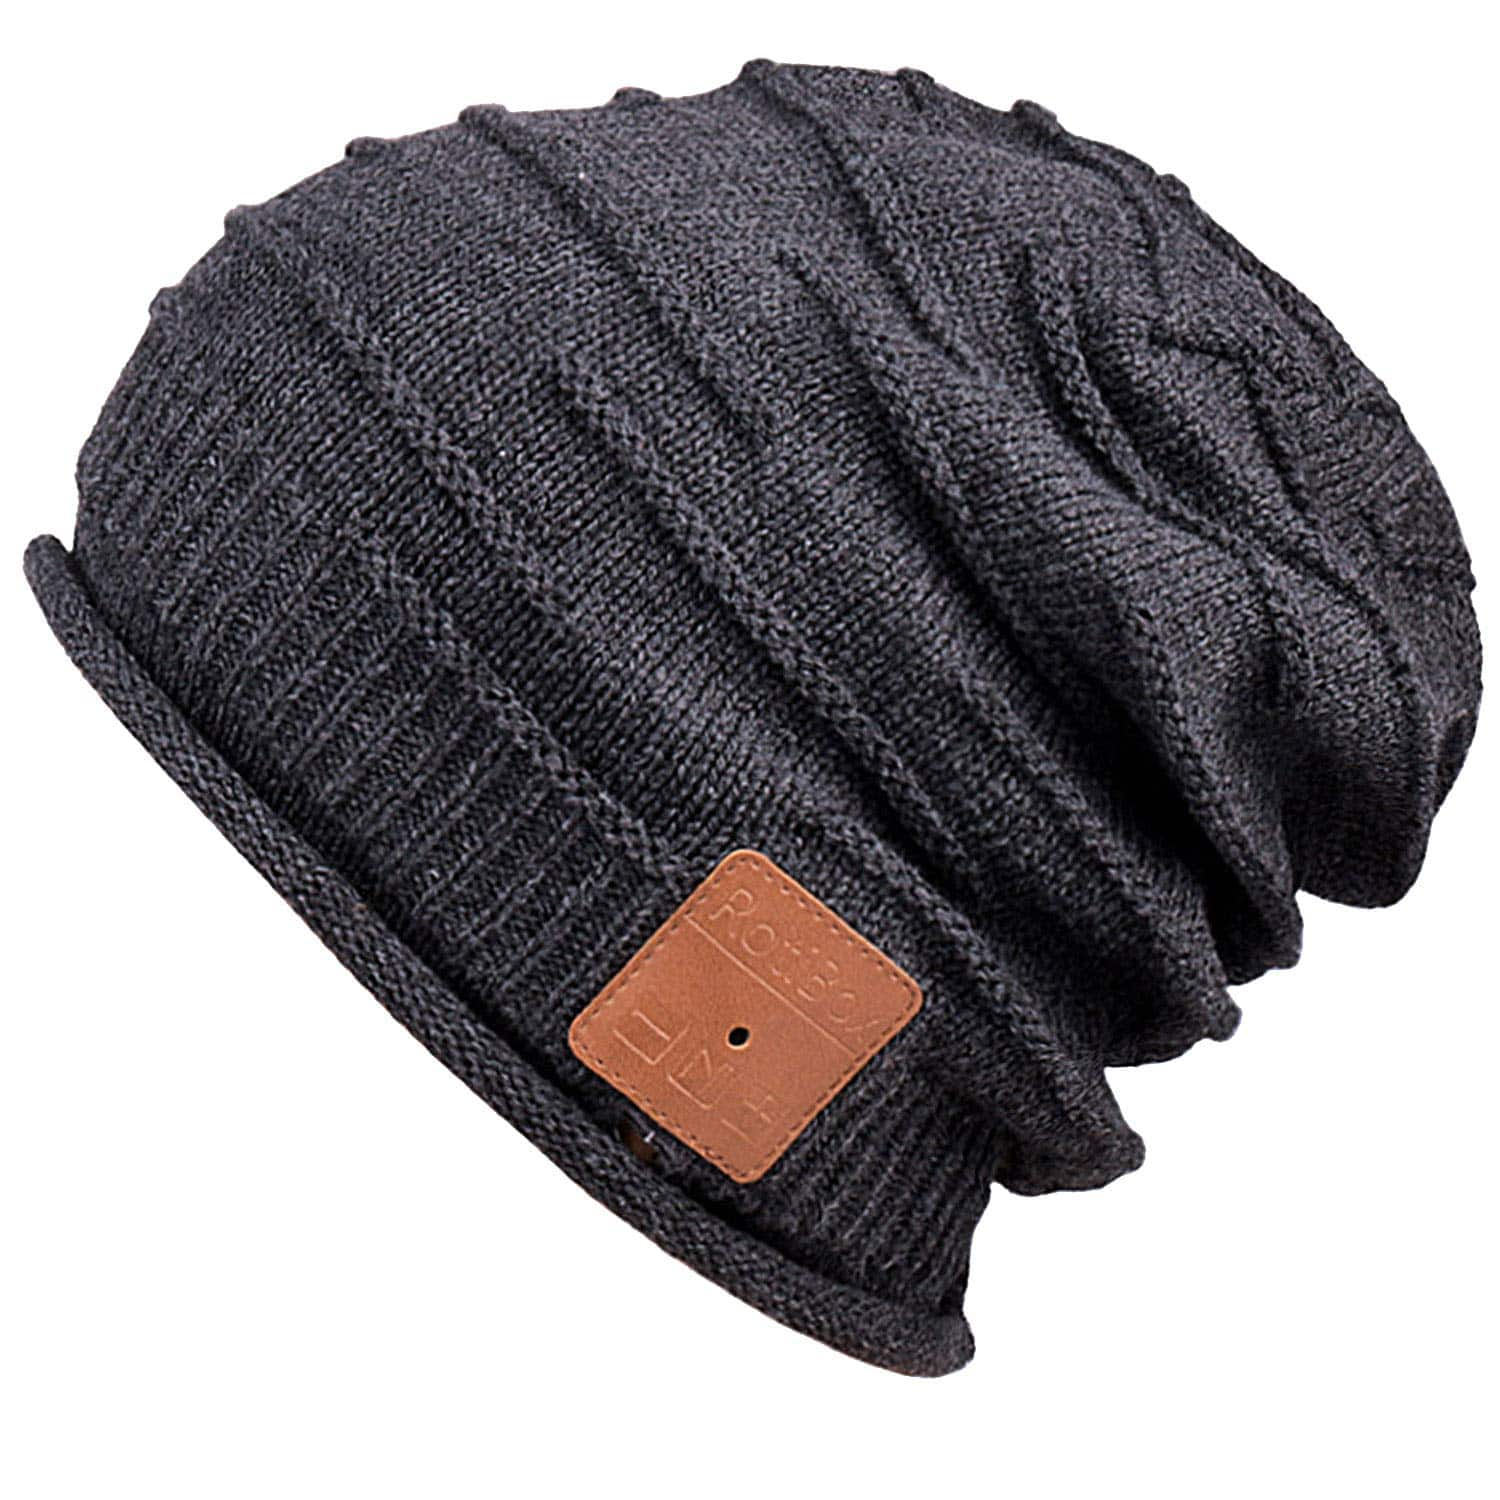 Wireless Bluetooth Beanie Hat with Headphone at Amazon $19.99